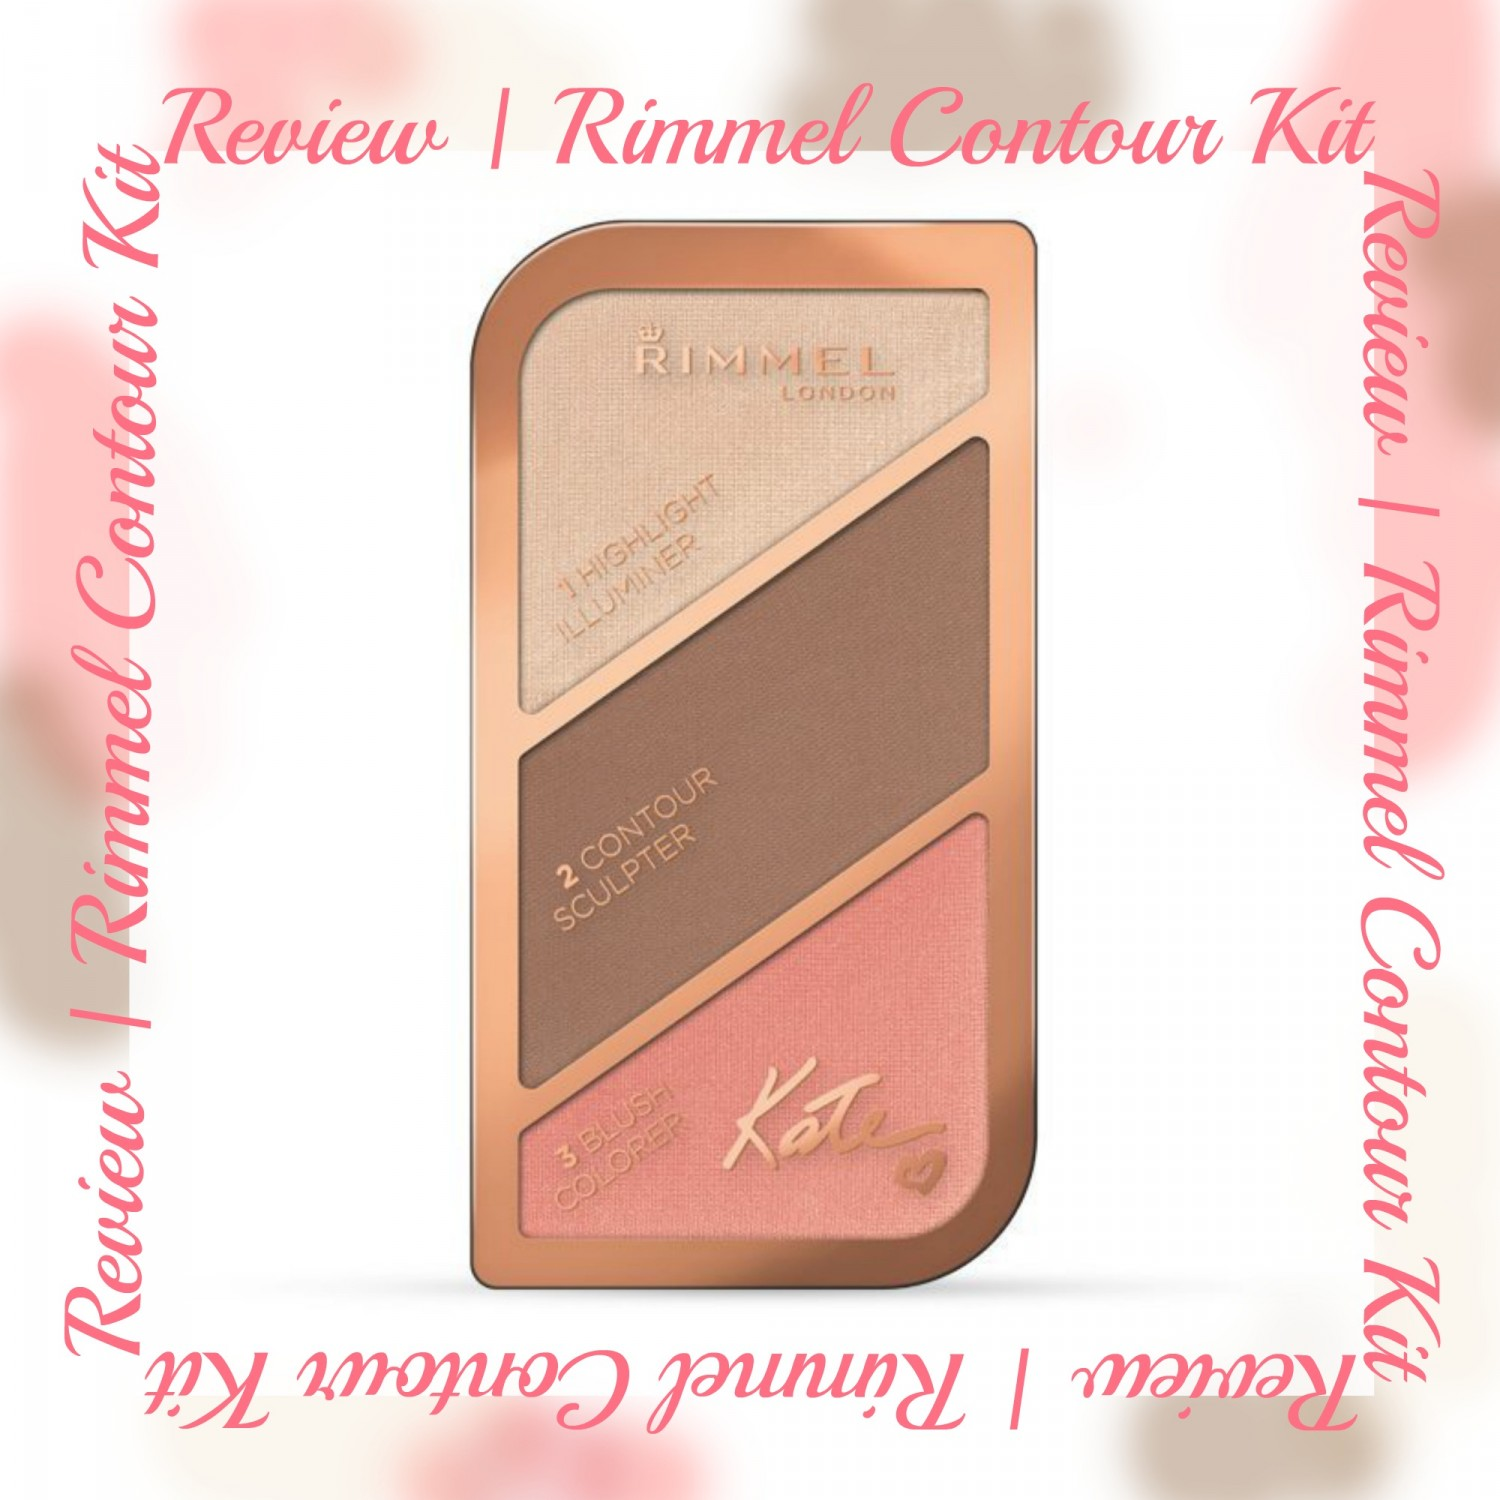 Rimmel contour kit review